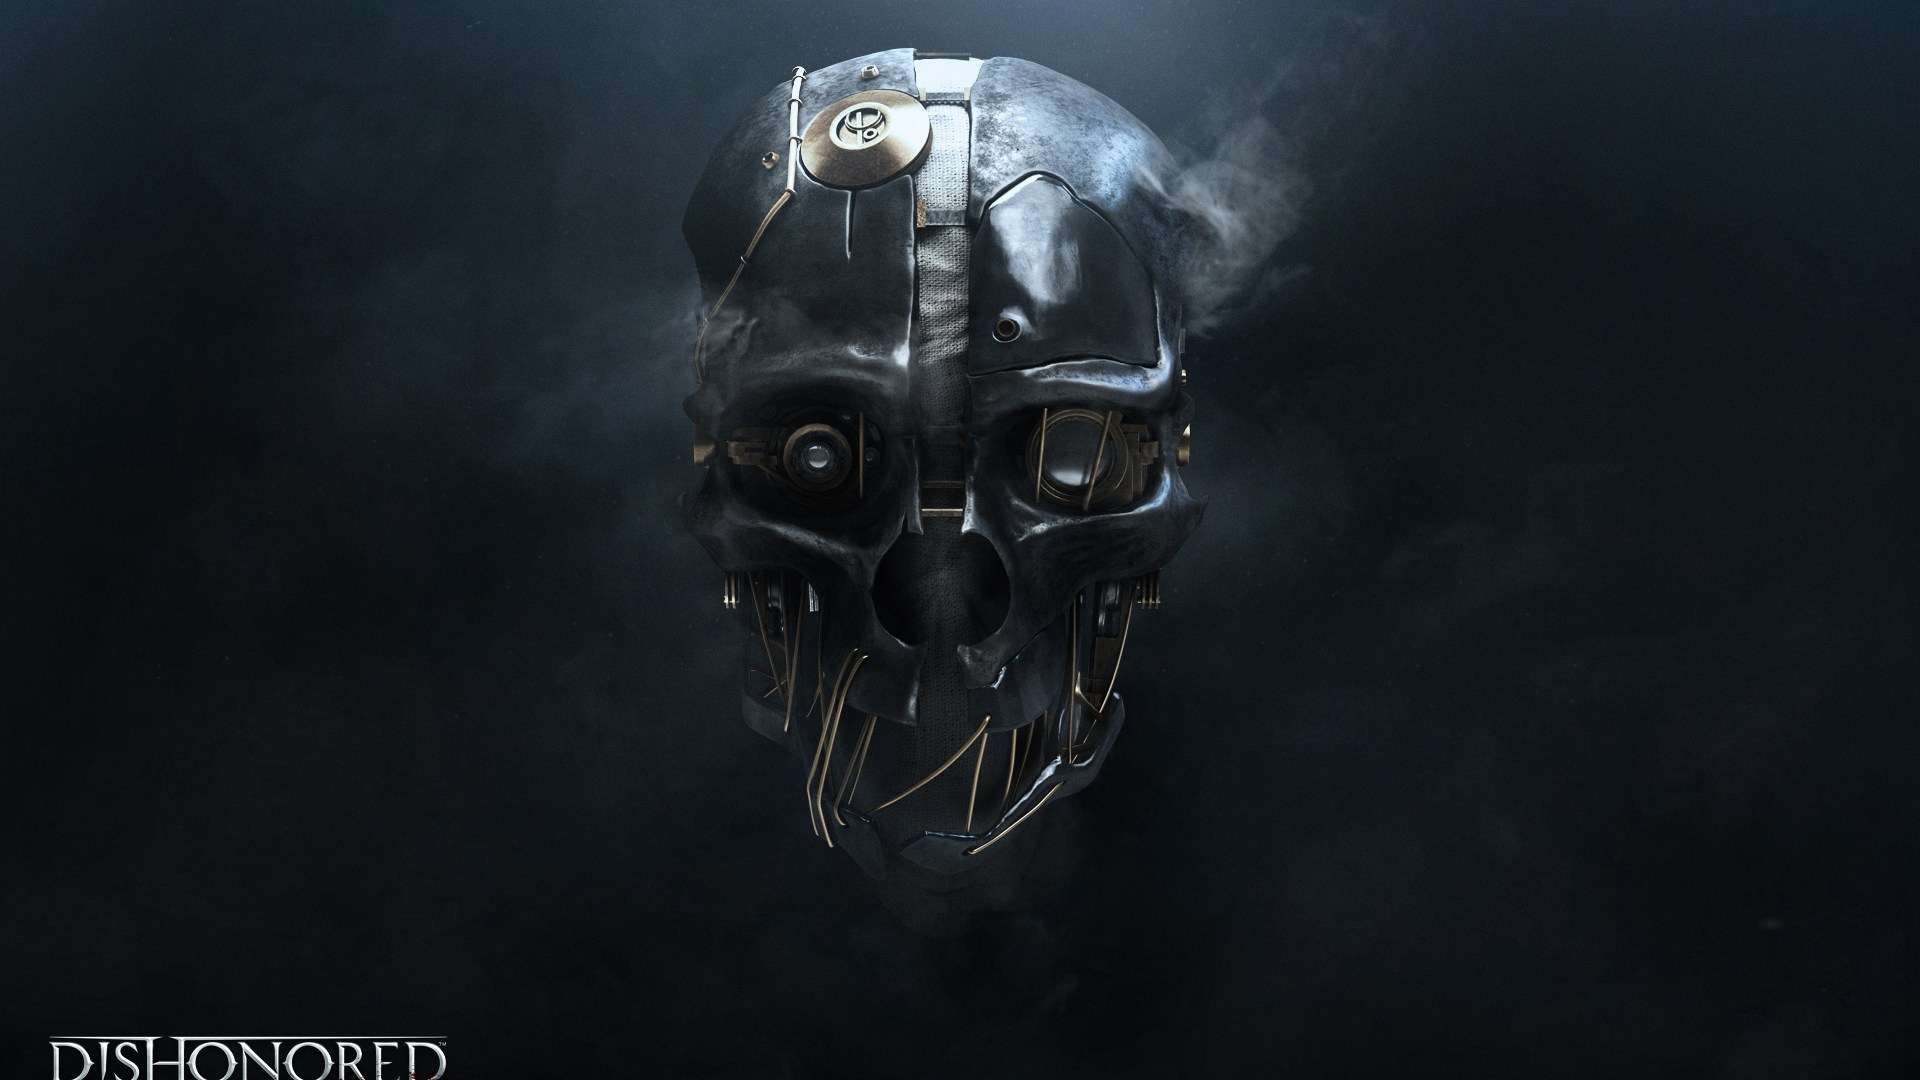 Dishonored Stealth HD Wallpaper Background 9654 Wallur 1920x1080